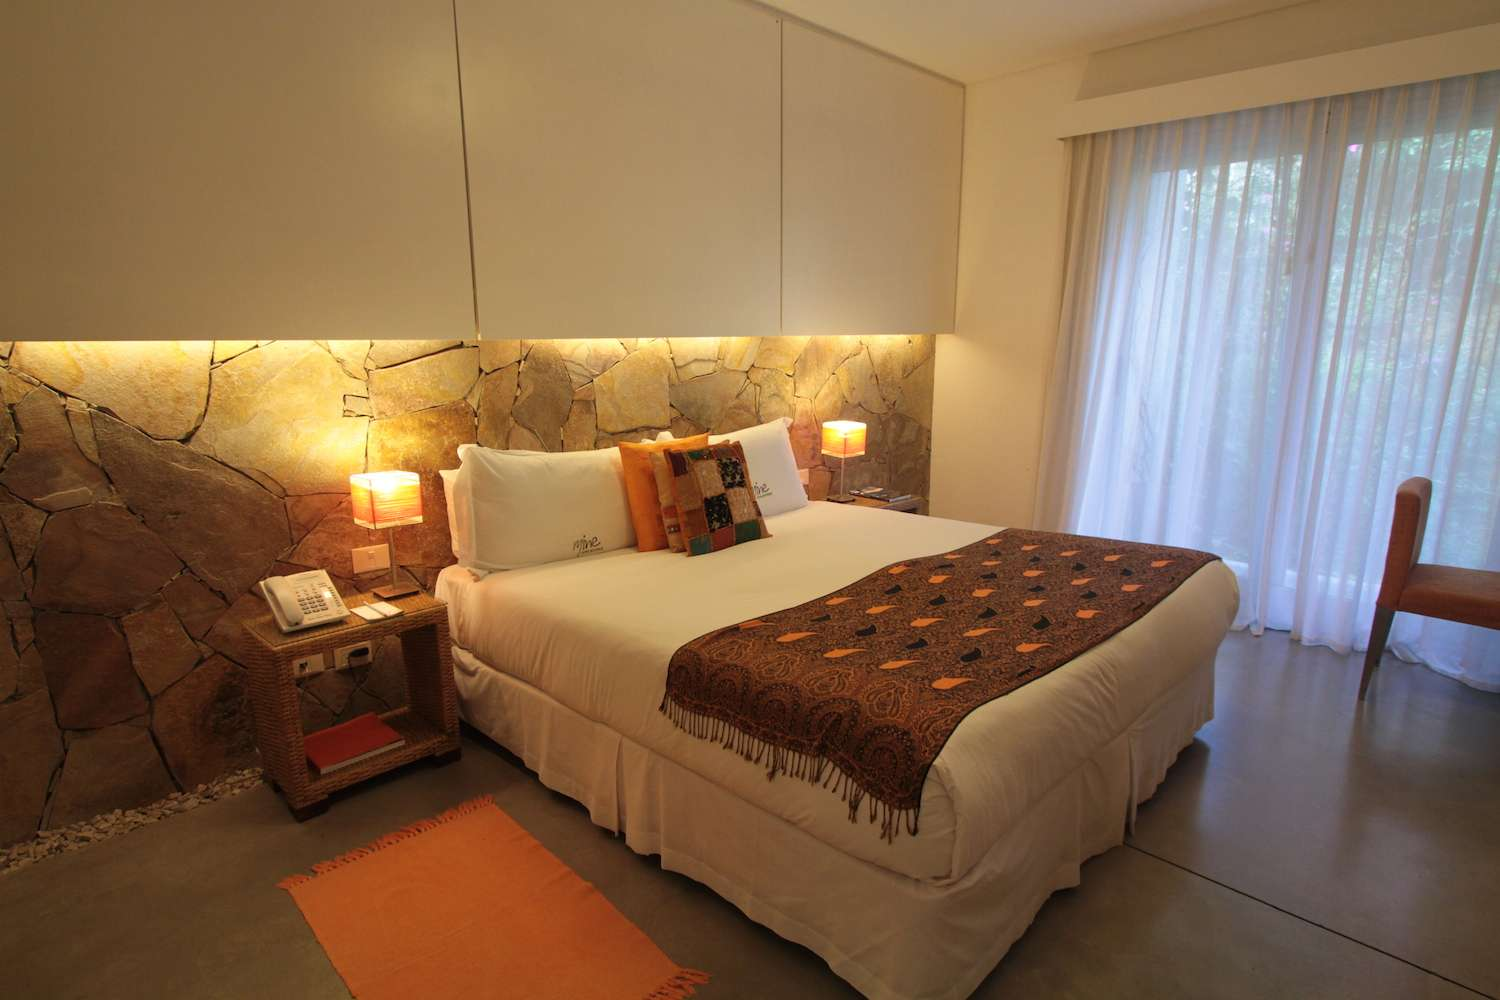 Mine hotel photos boutique hotel in palermo soho 4 stars for Hotel boutique palermo